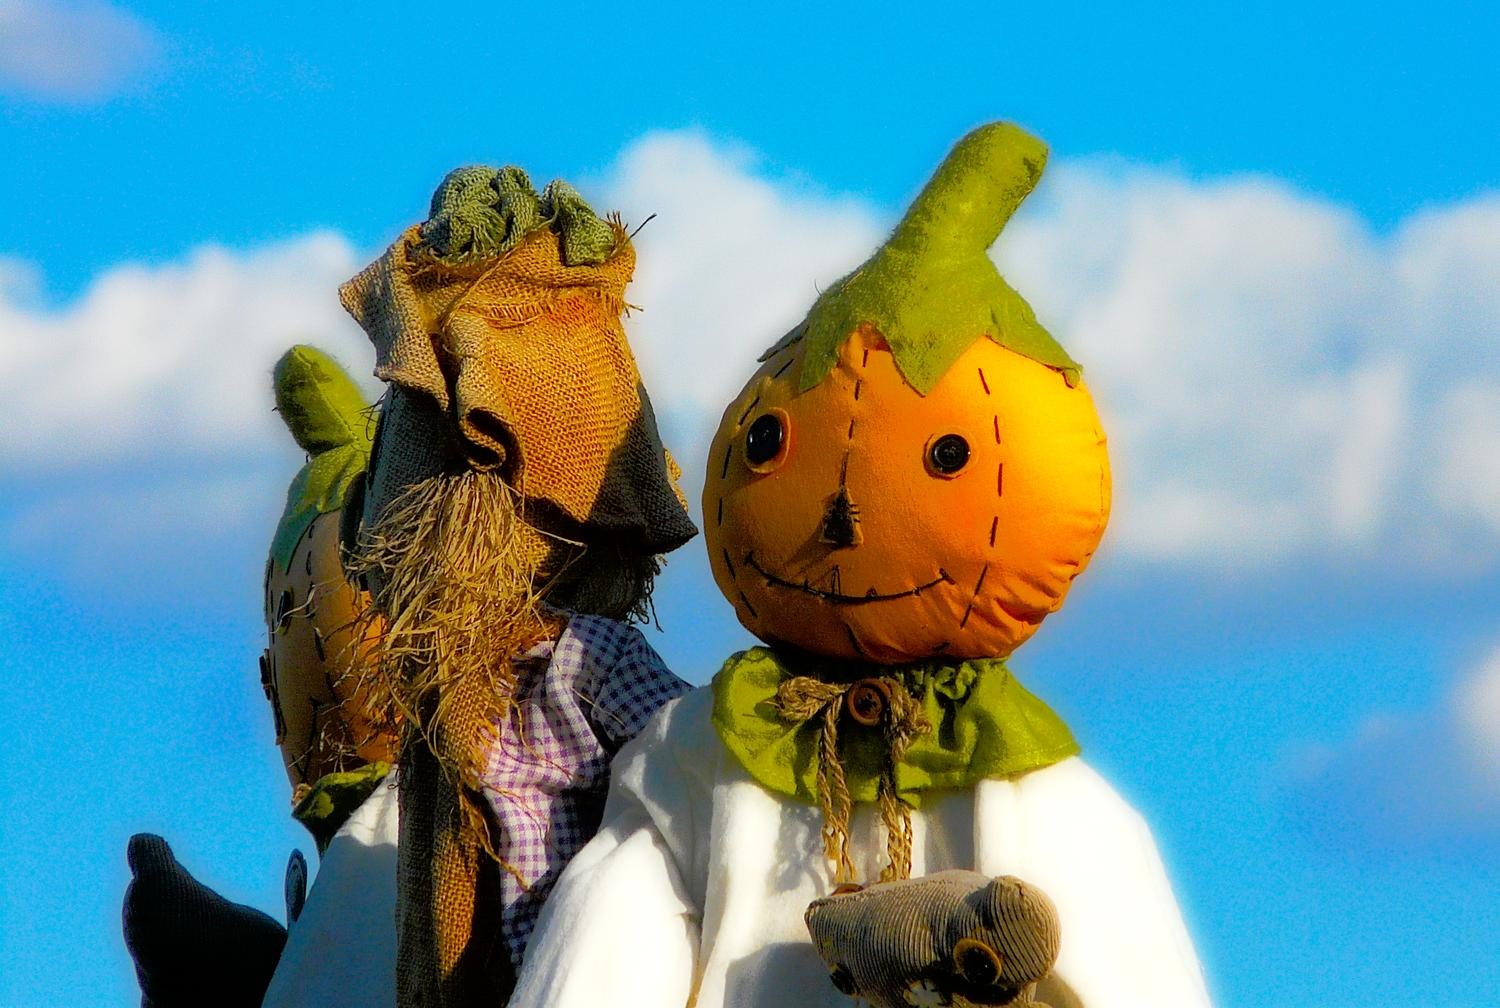 fantastical shot of a pumpkin scarecrow, with friends, like something from The Wizard of OZ - Mr. Pumpkin's fantasy - Panasonic DMC-FZ18 - - art  - photography - by Tony Karp